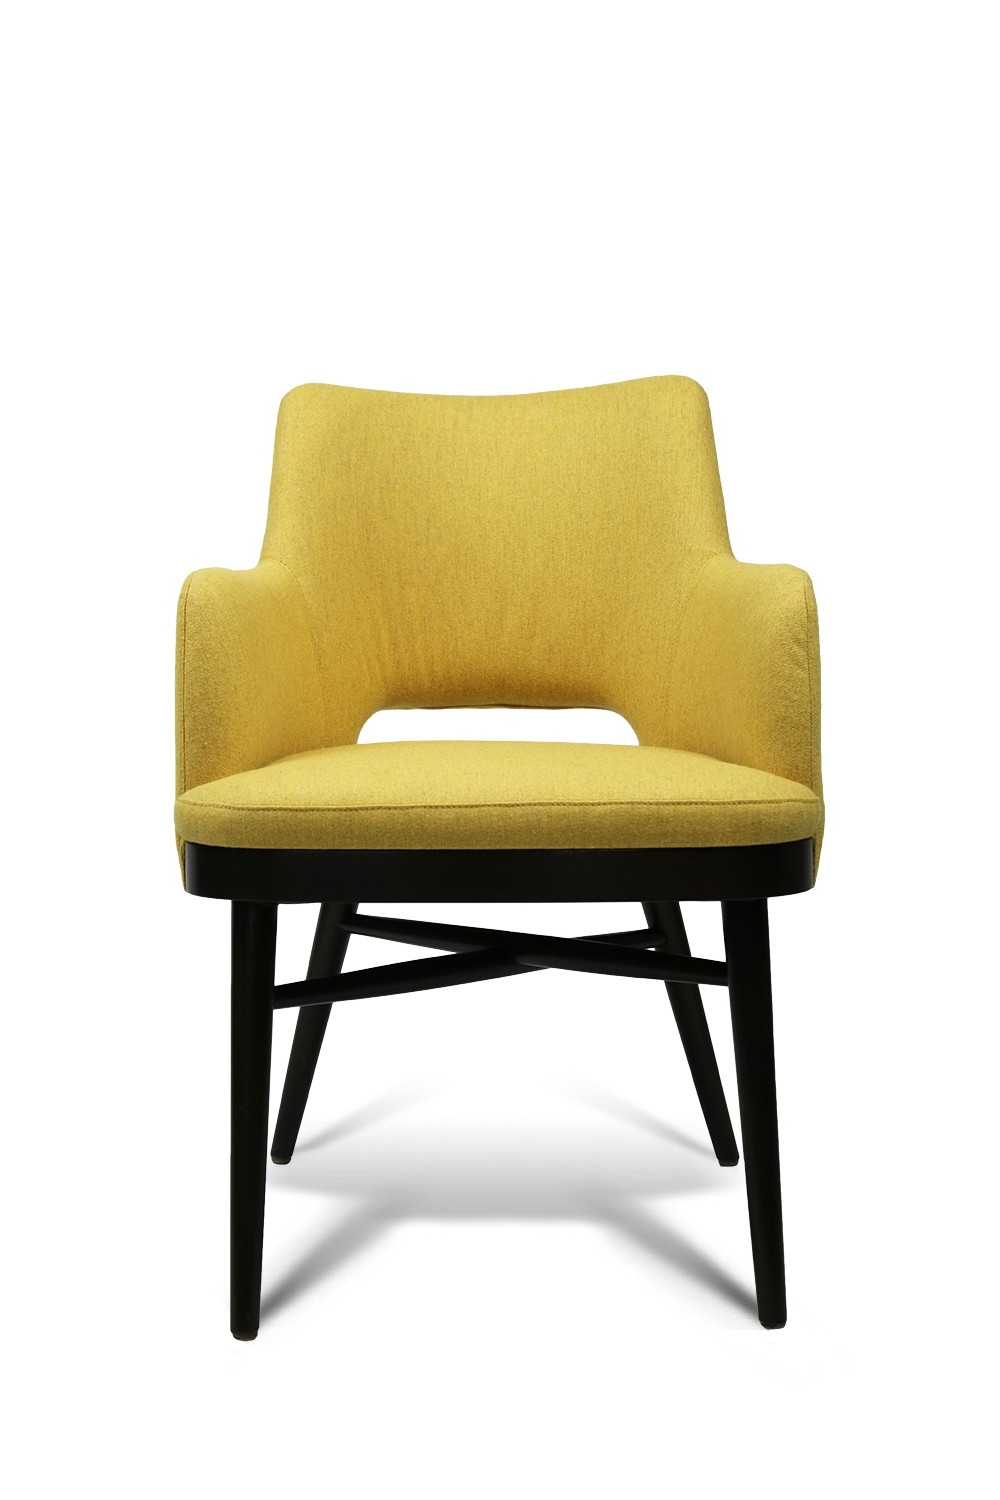 2019 Matteo Arm Sofa Chairs Within Matteo Series (View 2 of 20)